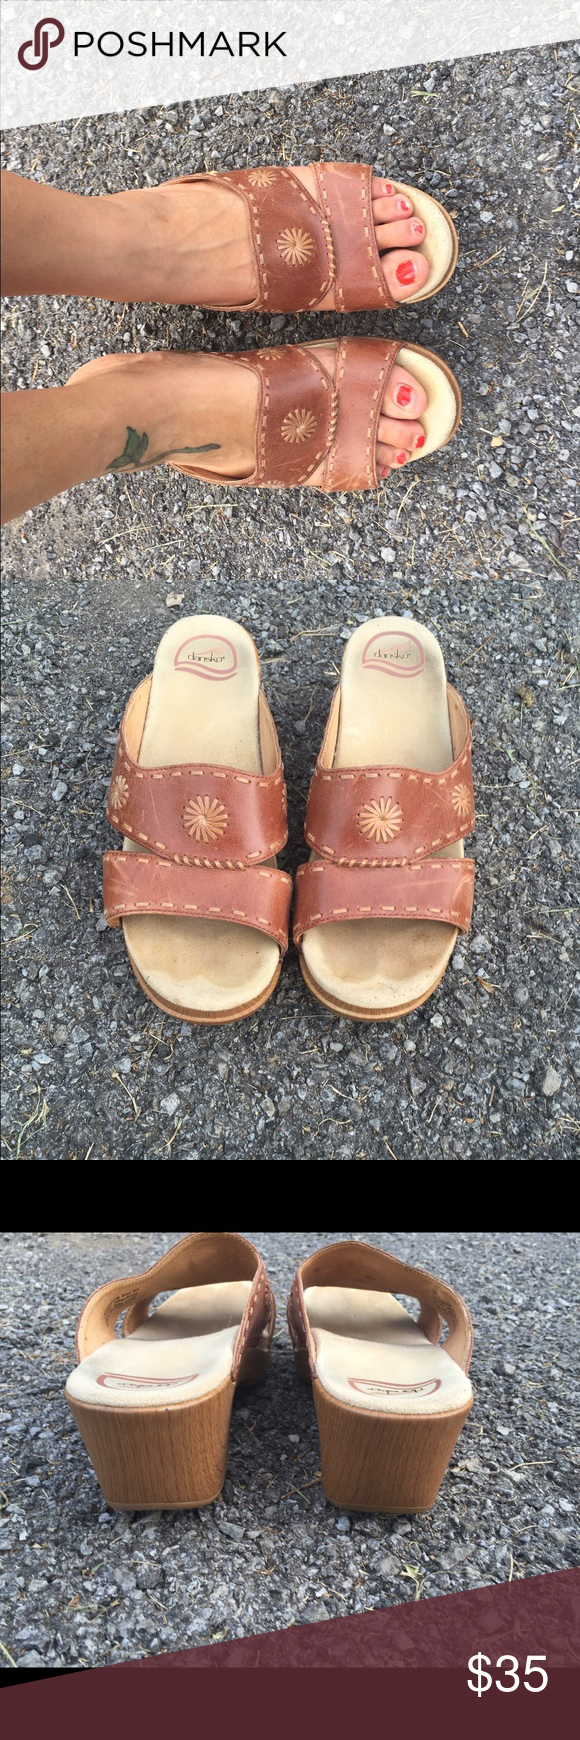 Dansko leather slides Brown leather with lift brown detailing very good condition couple scuffs but can be lightened with leather conditioning .. Dansko Shoes Sandals